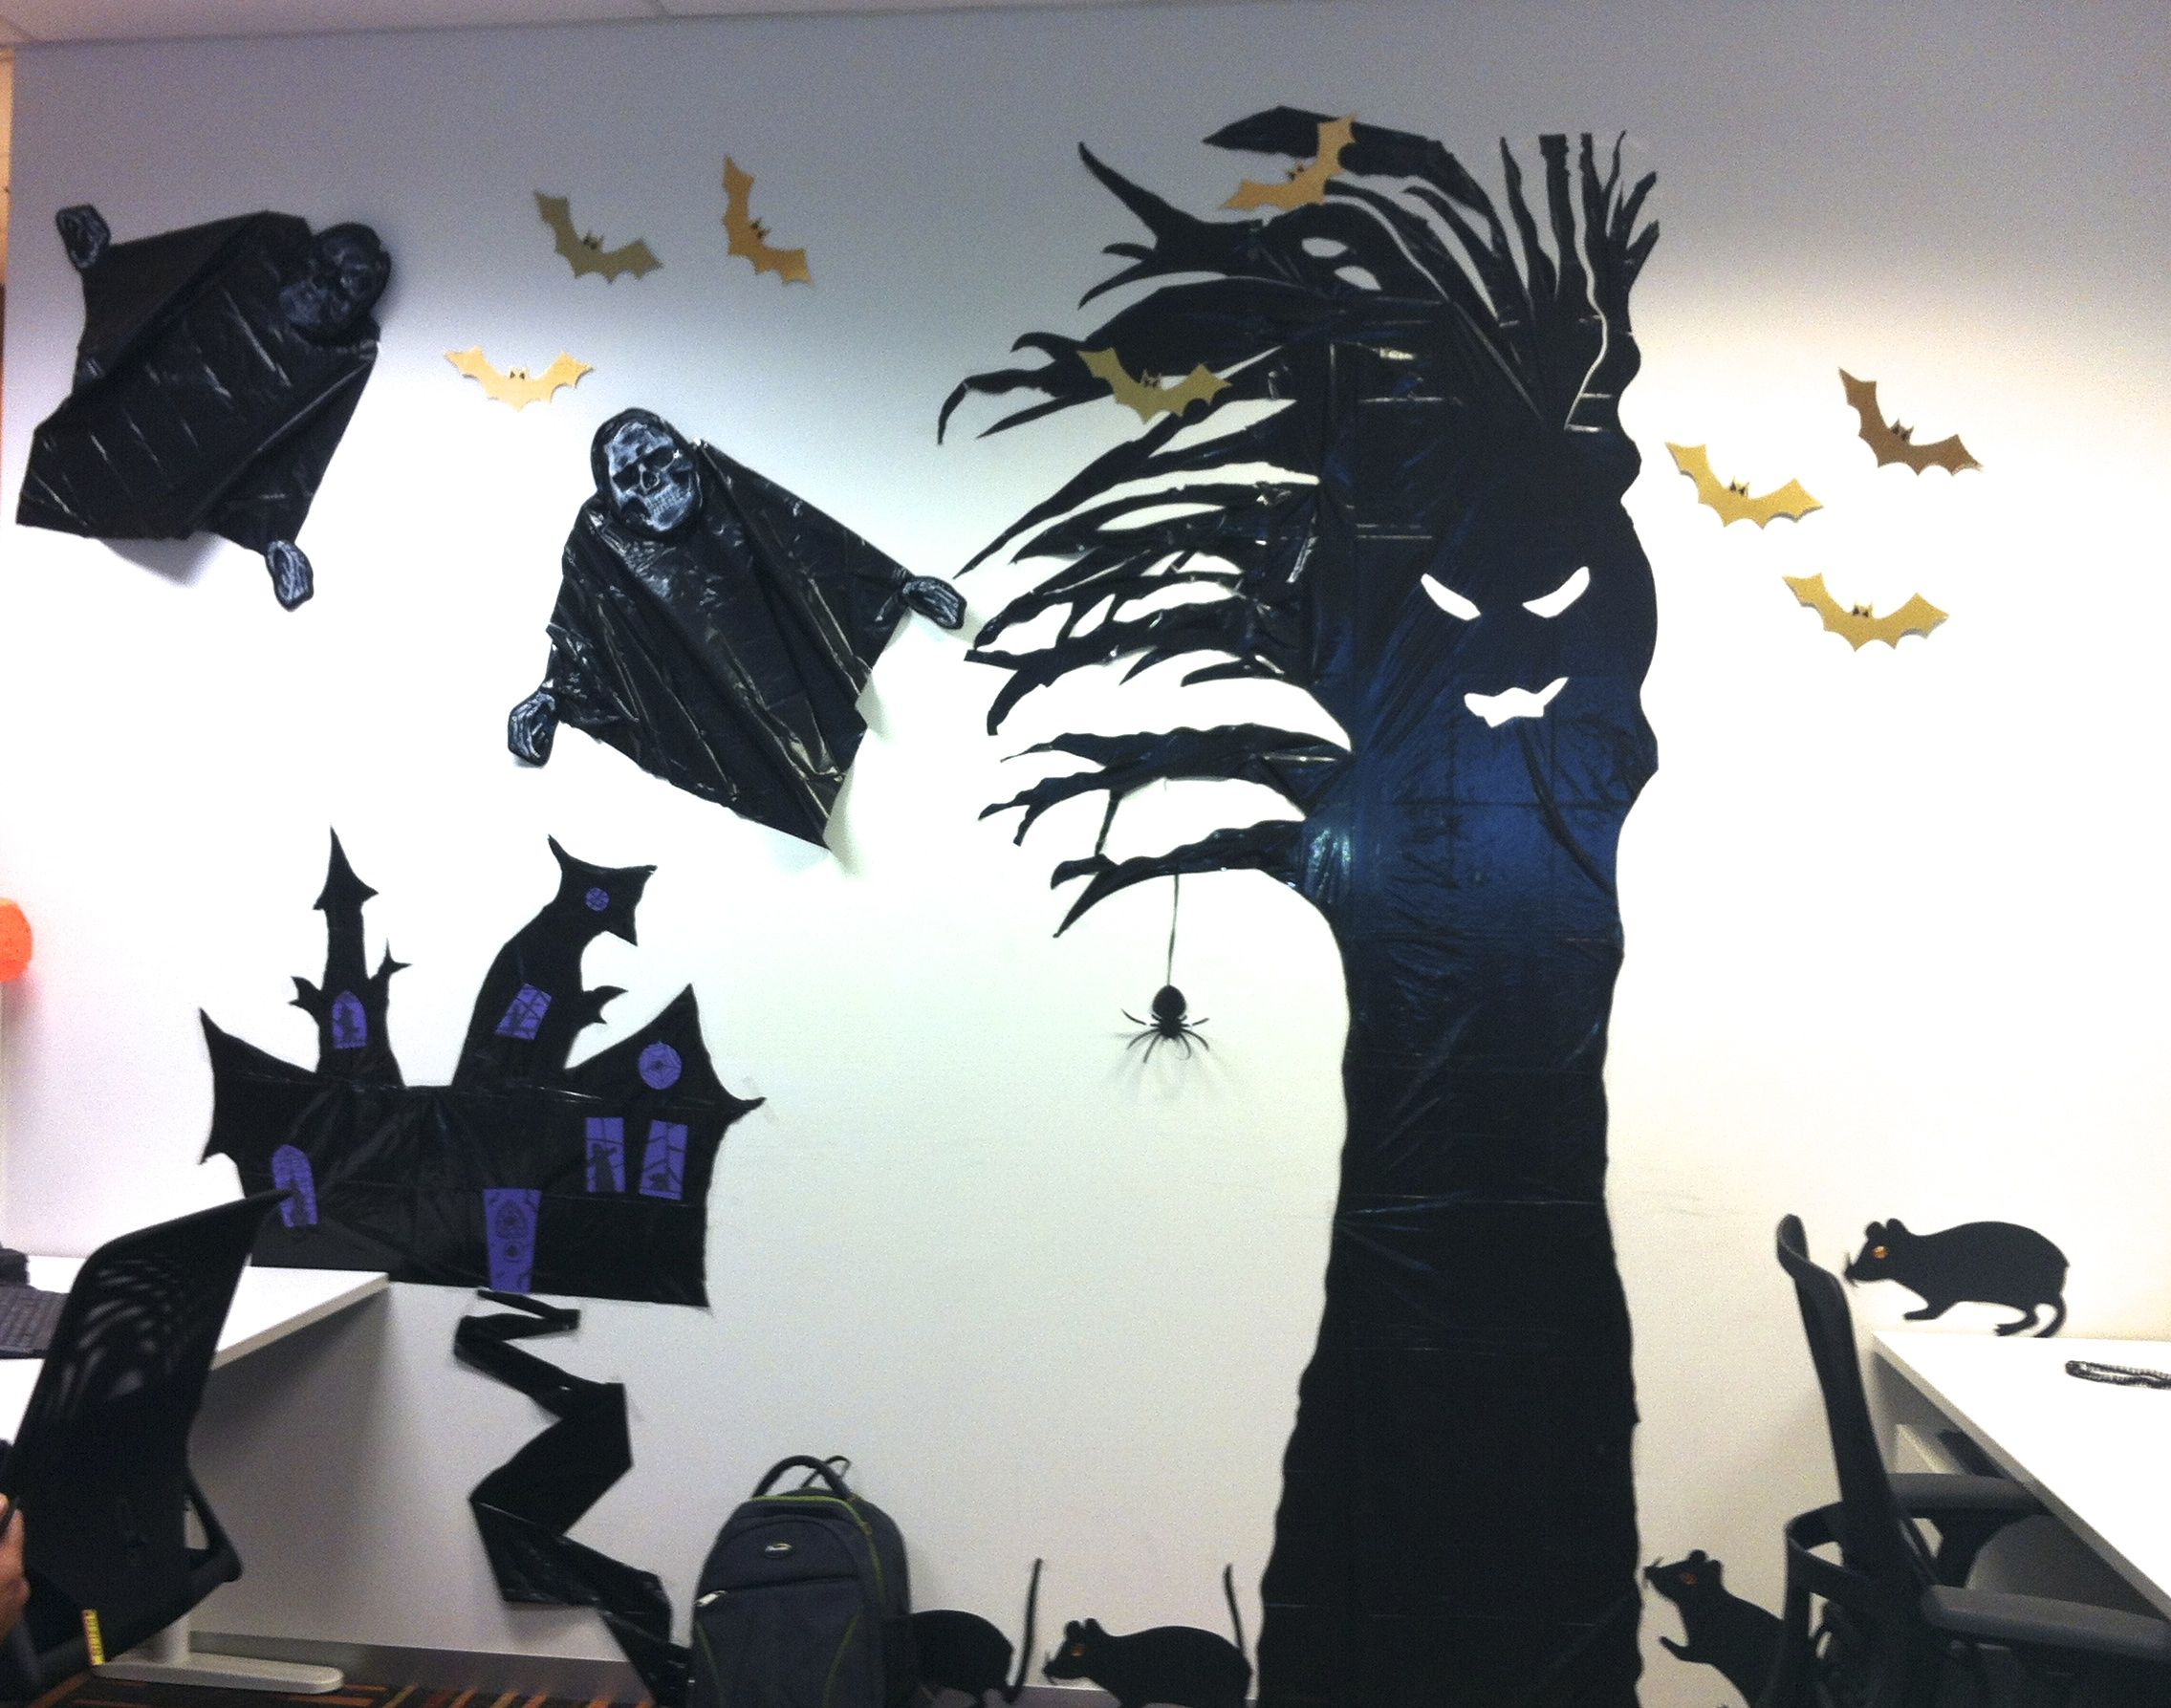 Halloween Decorations at the office made from black plastic